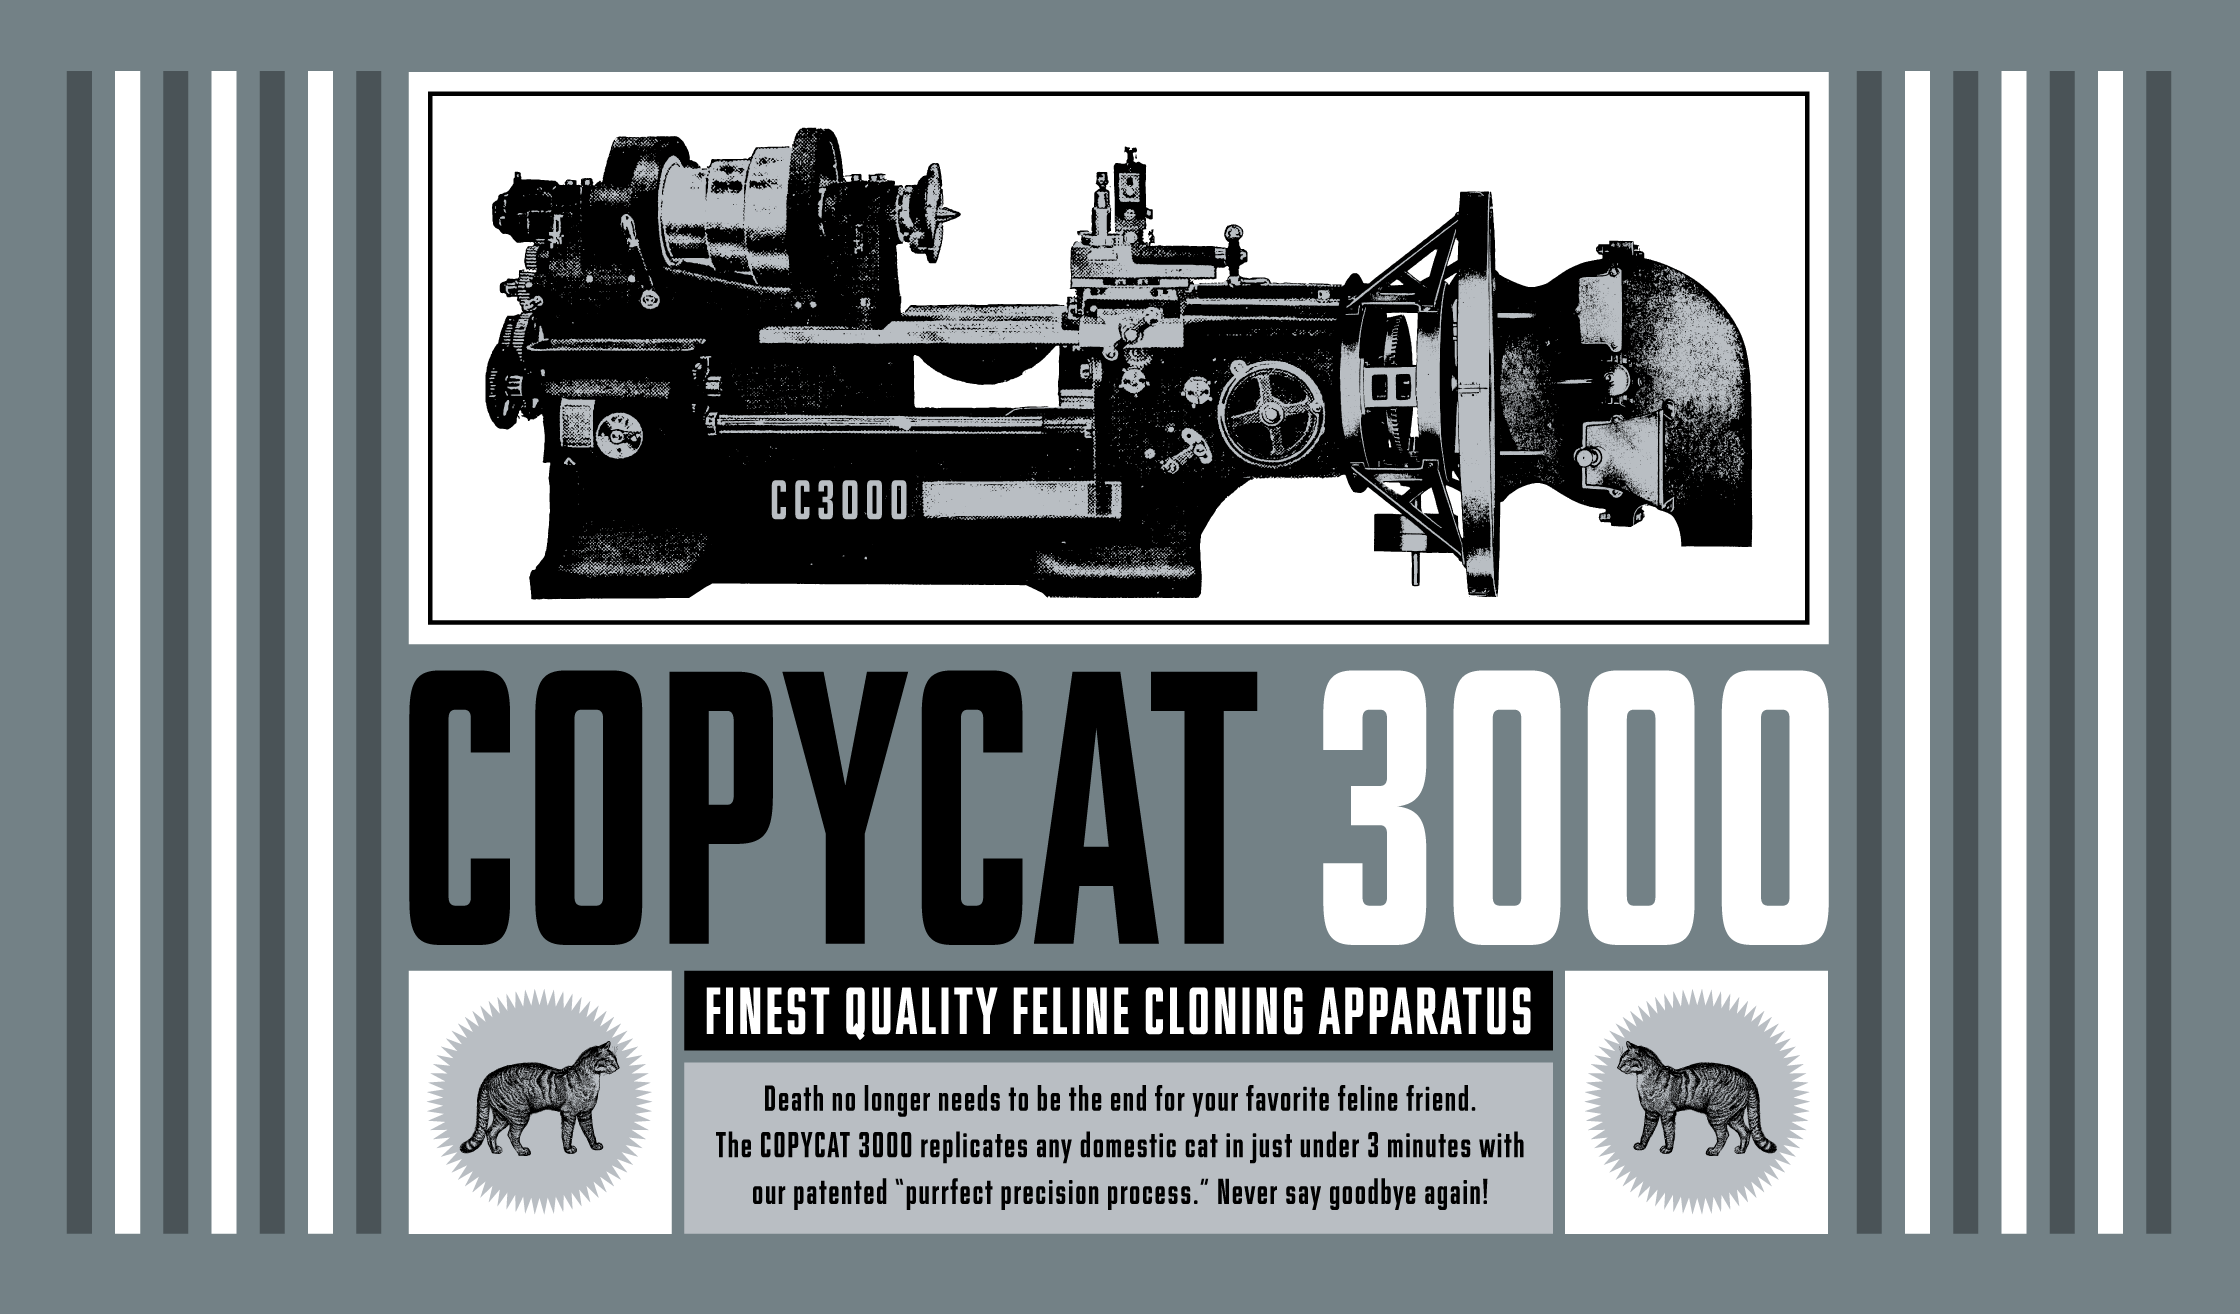 Filmotype Glenlake Banner Sample 2240